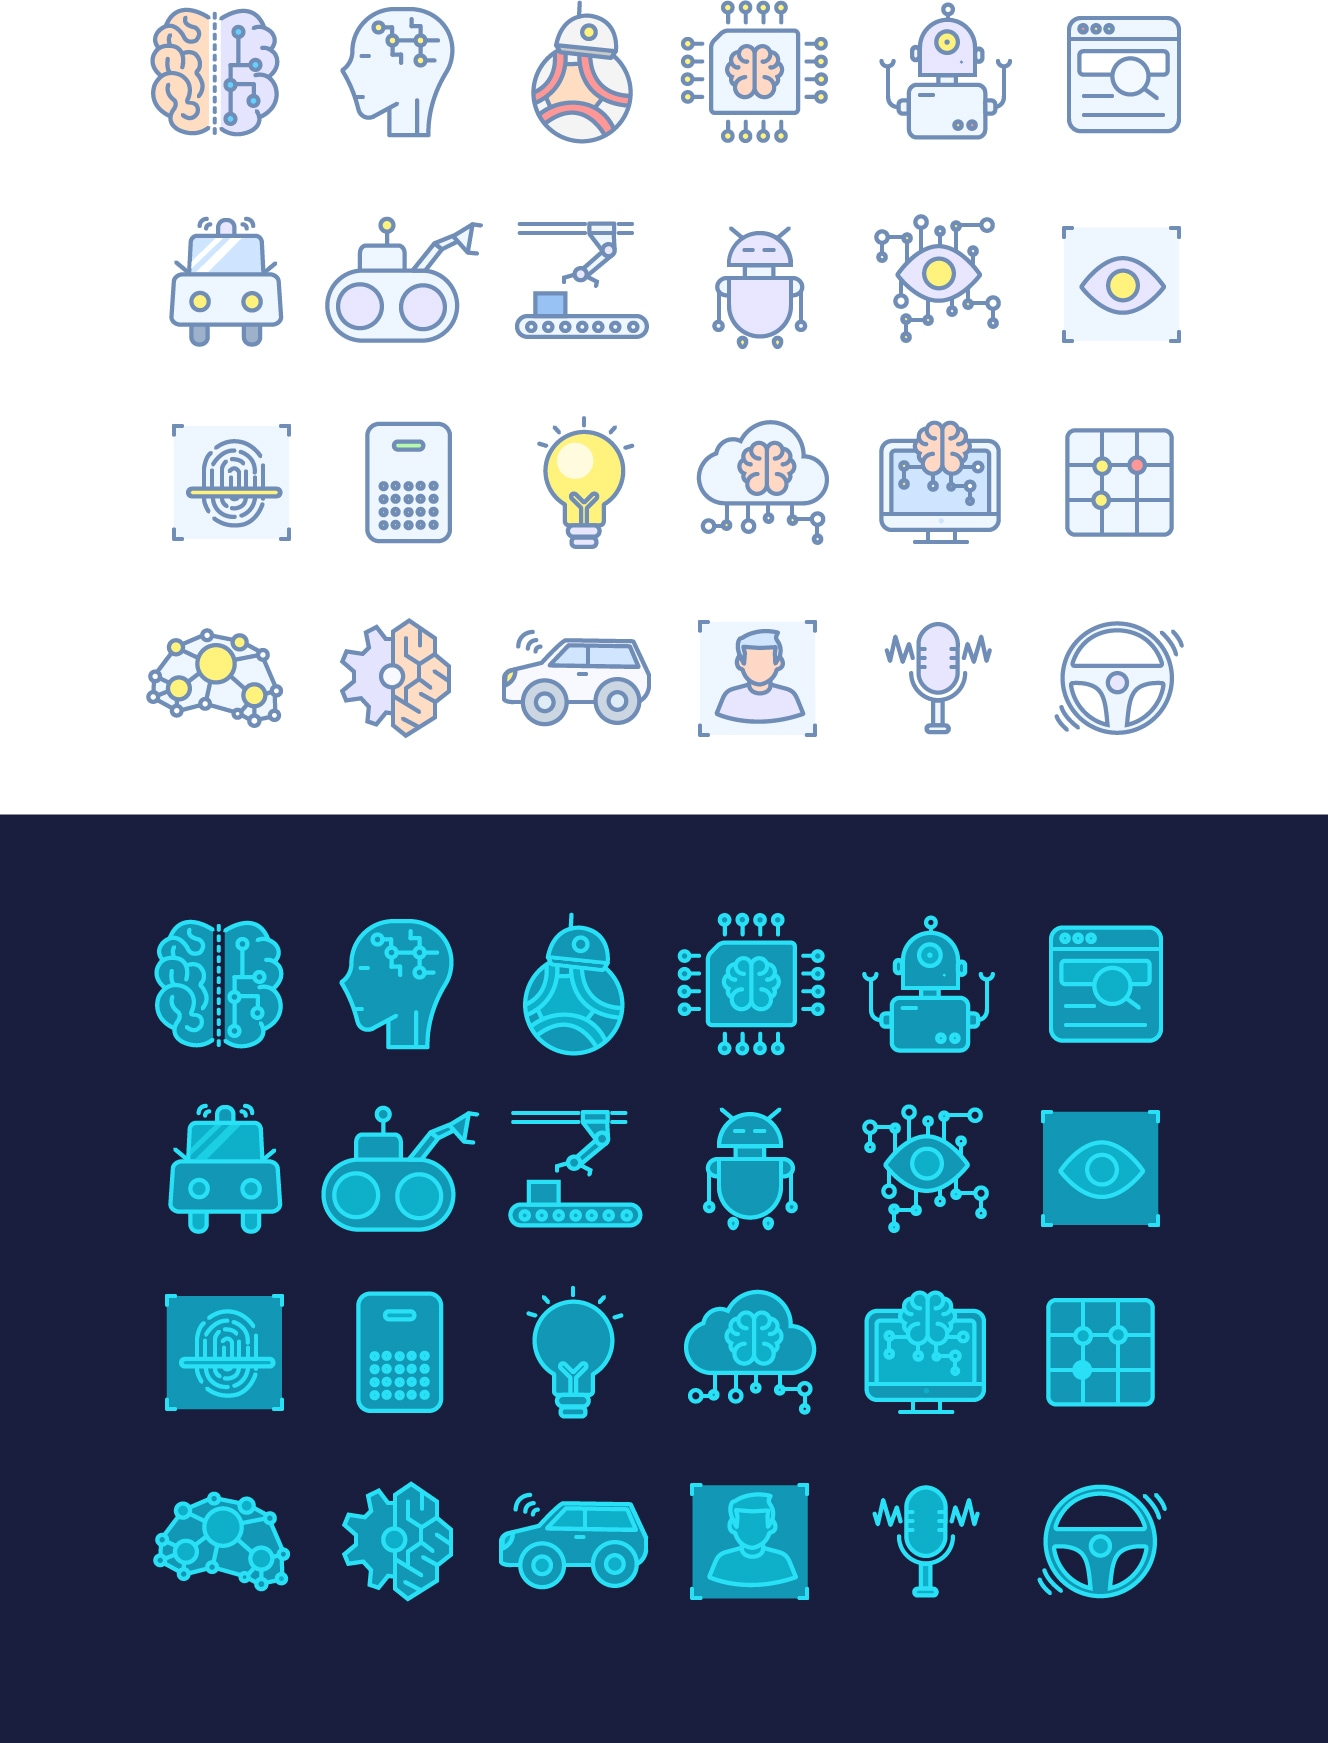 AI Free Icon Set by Xiaojianjian - Free icon set designed by xiaojianjian, with 2 icon styles.